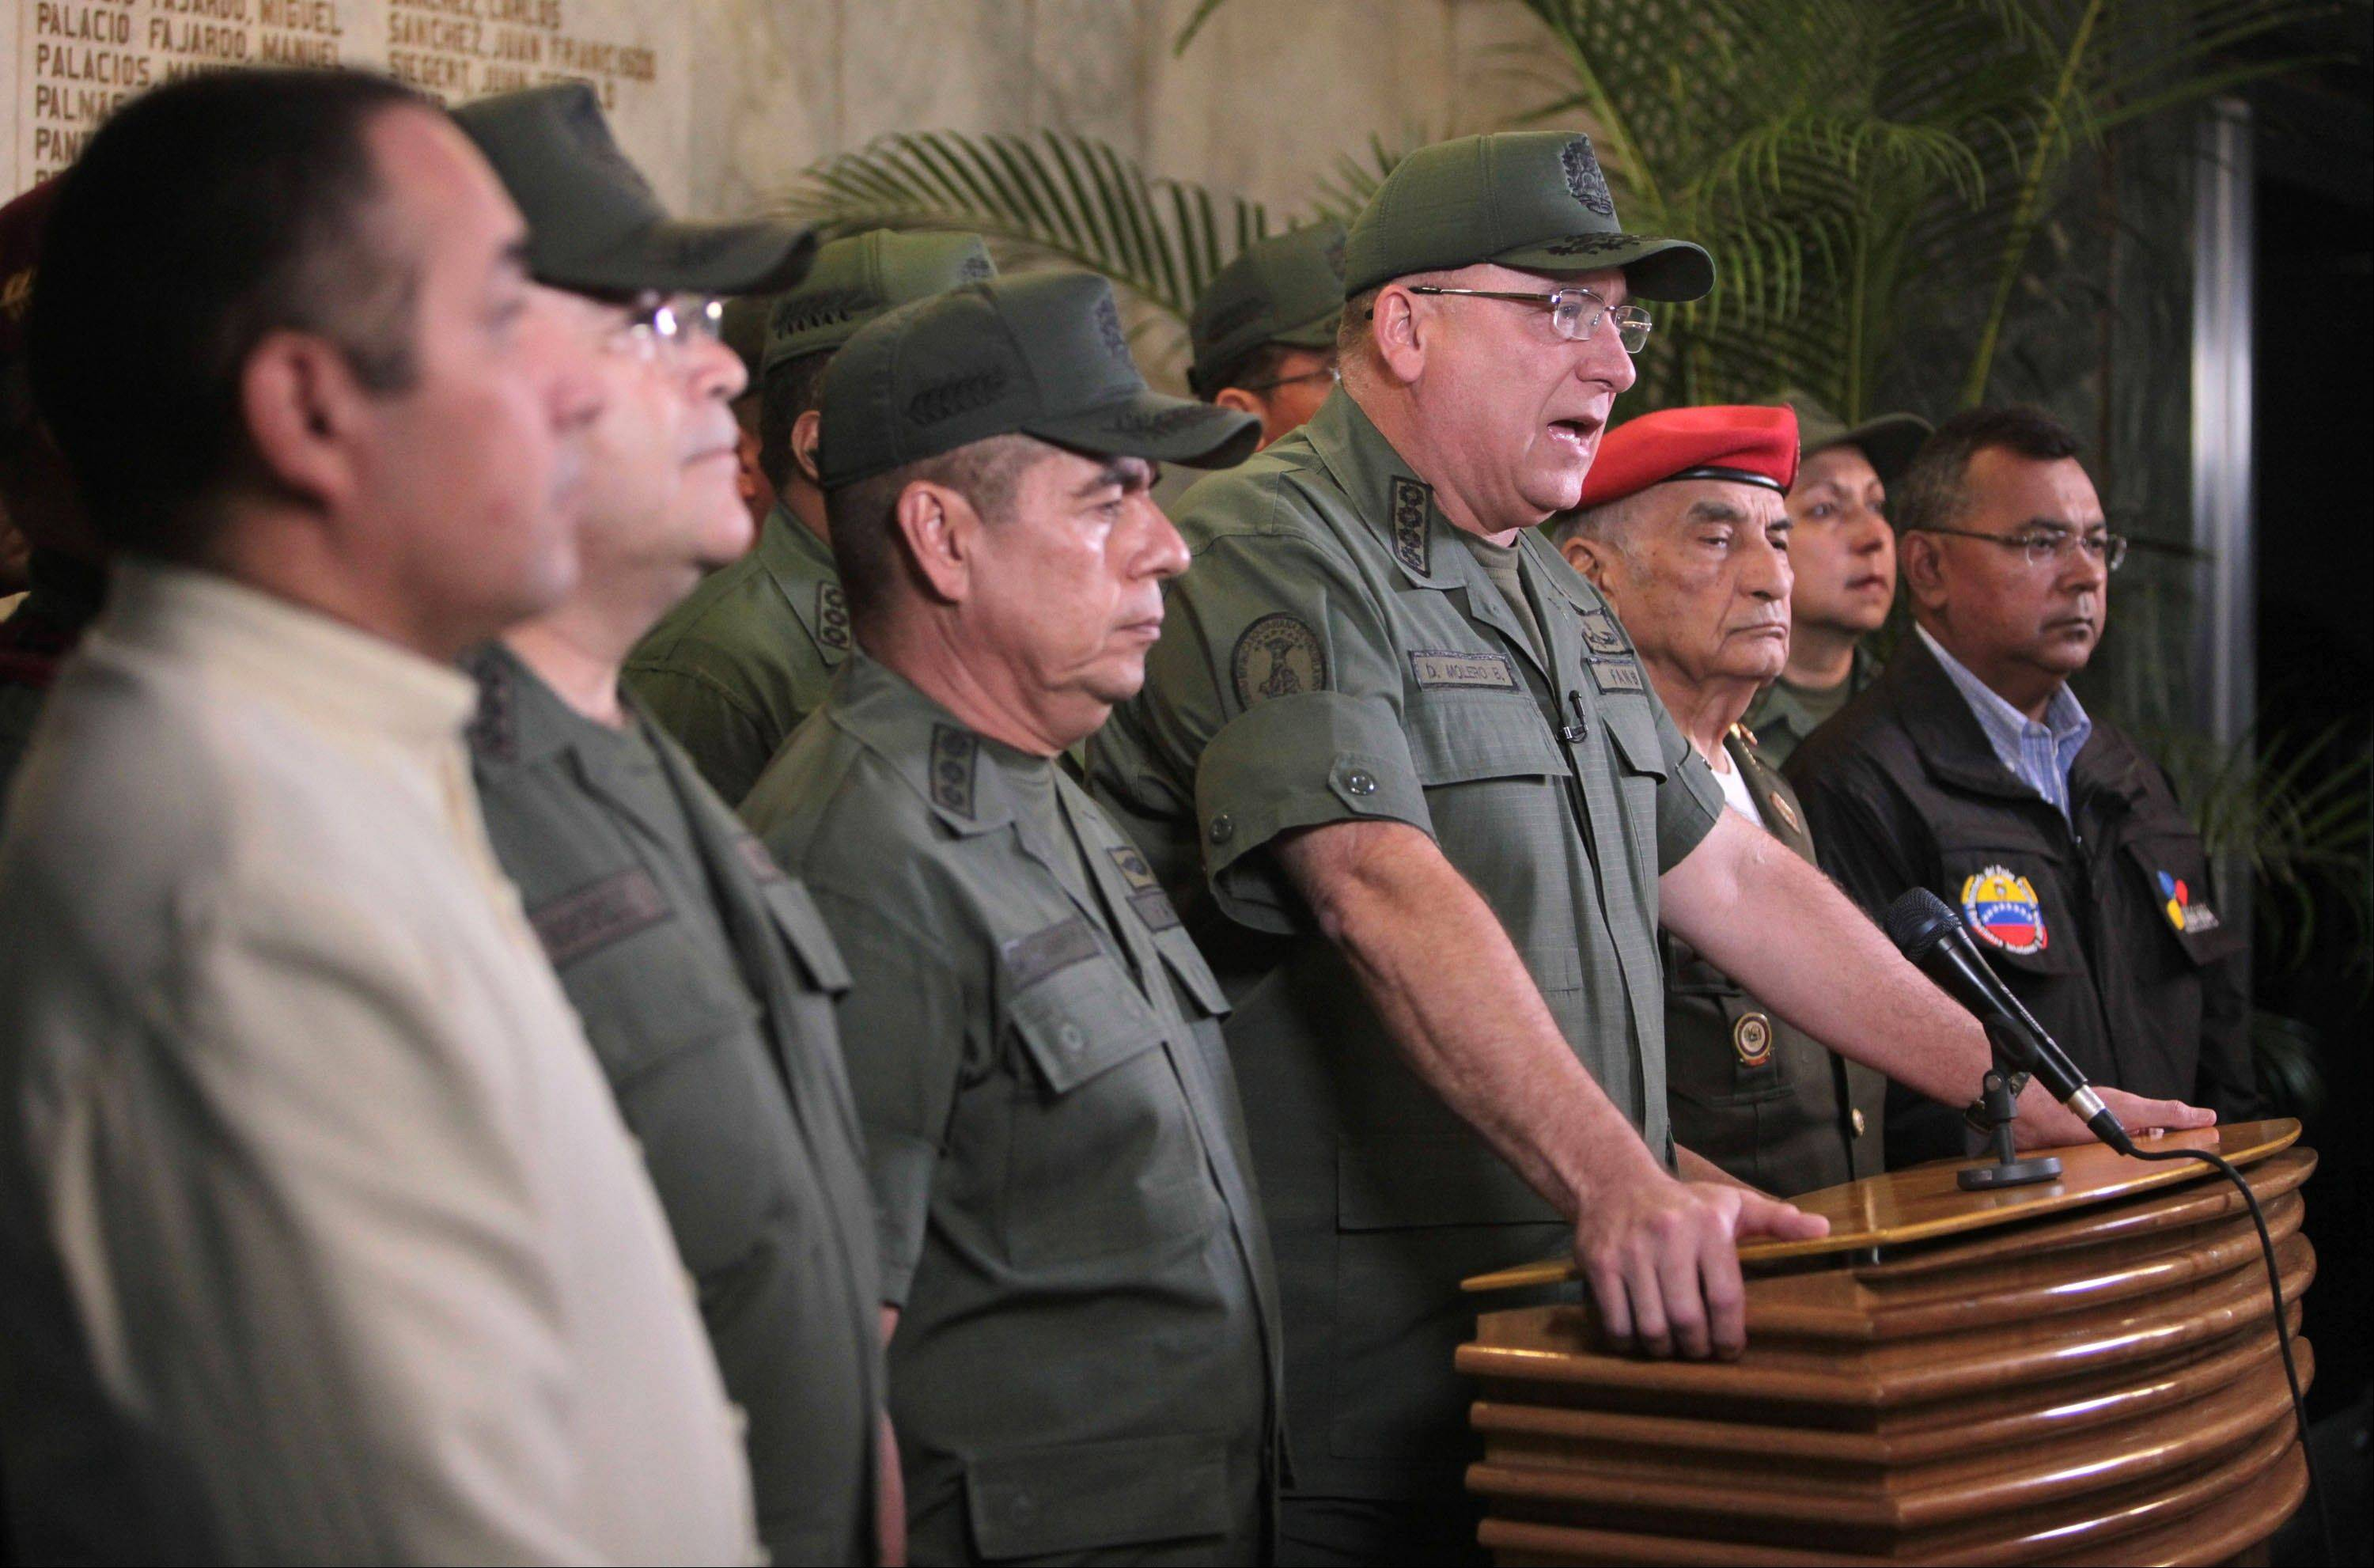 In this photo released by Miraflores Presidential Press Office, Venezuela's Defense Minister Admiral Diego Molero, at the podium, speaks as he is flanked by other military leaders during a live televised message to the nation after the vice president announced the death of President Hugo Chavez in Caracas, Venezuela.